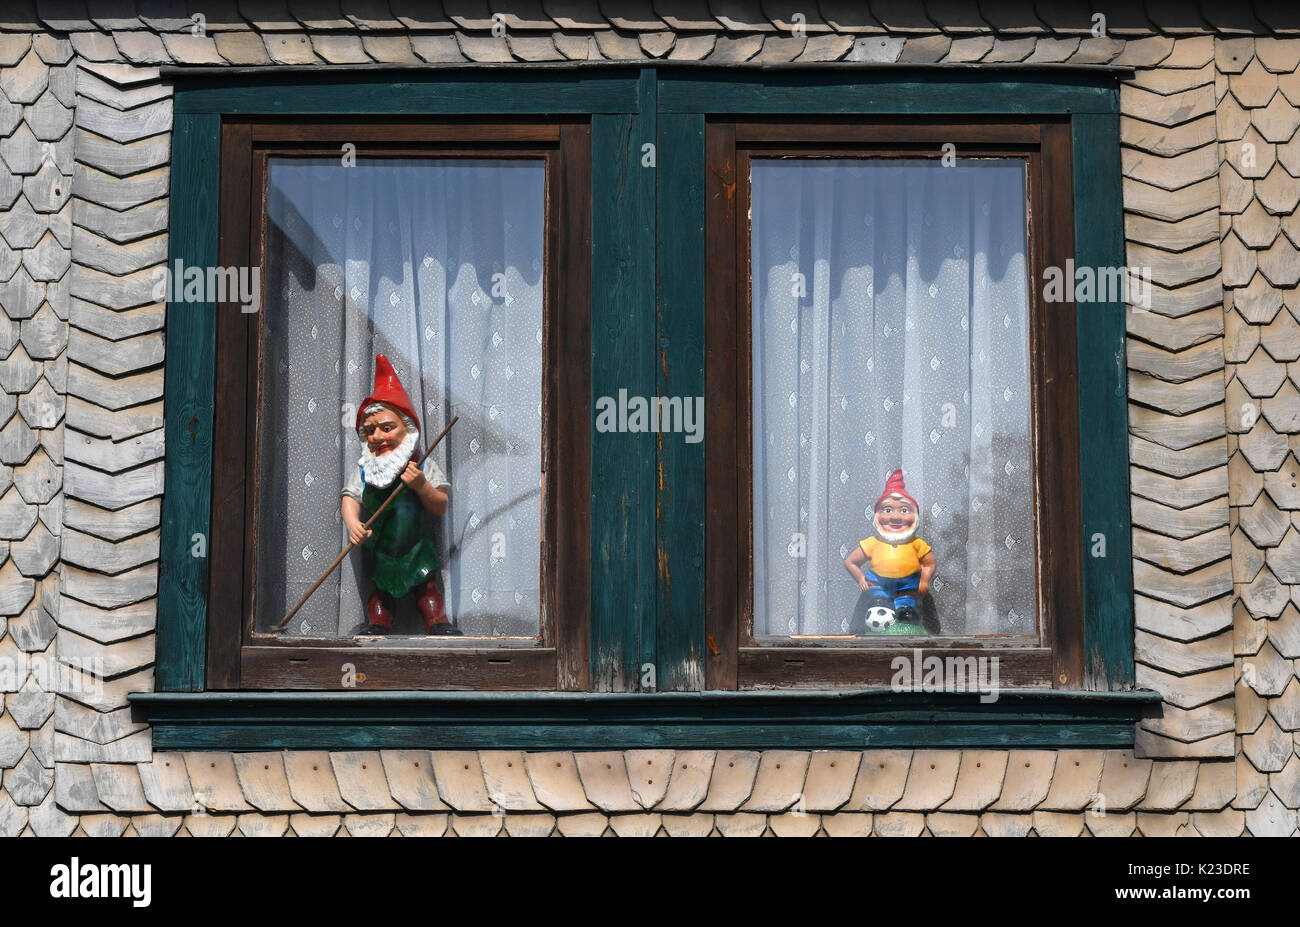 Graefenroda, Germany. 25th Aug, 2017. Garden gnomes stand in a window at the garden gnome manufactory in Graefenroda, Germany, 25 August 2017. More than 500 different figures between four and 60 centimeters are manufactured here. Since 1874, the Griebel family has been producing the burnt clay figures and is now the only company in Germany. Most clients outside of Germany are from France, Austria, Italy, the Netherlands and Switzerland. Photo: Jens Kalaene/dpa-Zentralbild/dpa/Alamy Live News - Stock Image